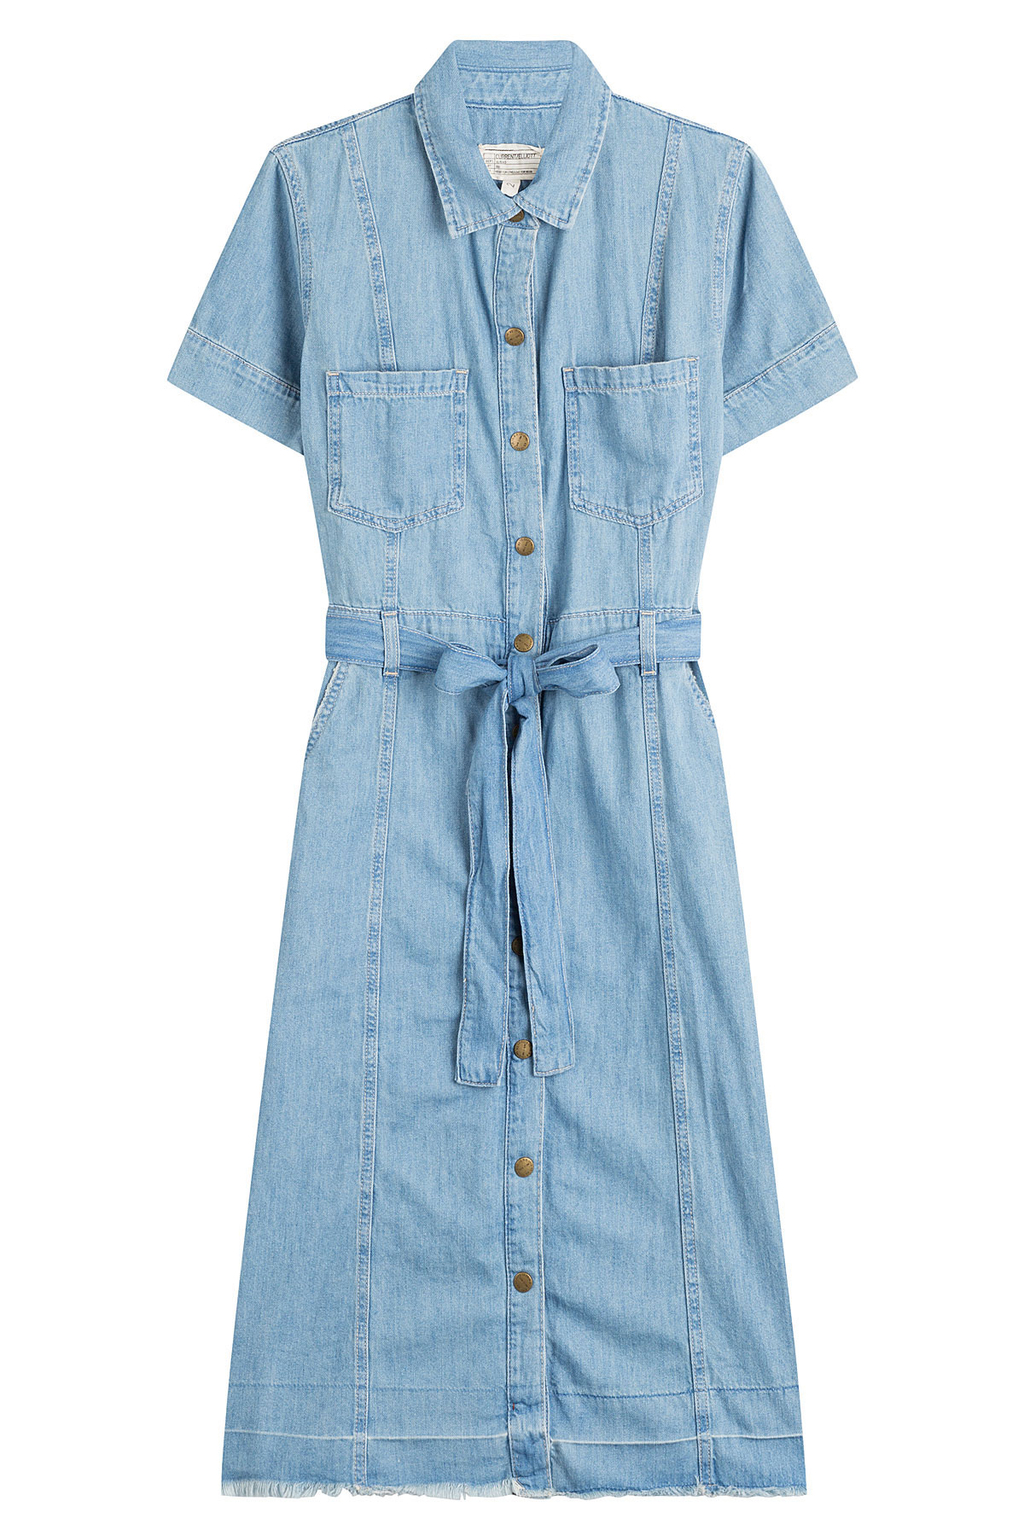 Belted Denim Shirt Dress Blue - style: shirt; neckline: shirt collar/peter pan/zip with opening; pattern: plain; waist detail: belted waist/tie at waist/drawstring; predominant colour: denim; occasions: casual; length: on the knee; fit: body skimming; fibres: cotton - 100%; sleeve length: short sleeve; sleeve style: standard; texture group: denim; pattern type: fabric; season: s/s 2016